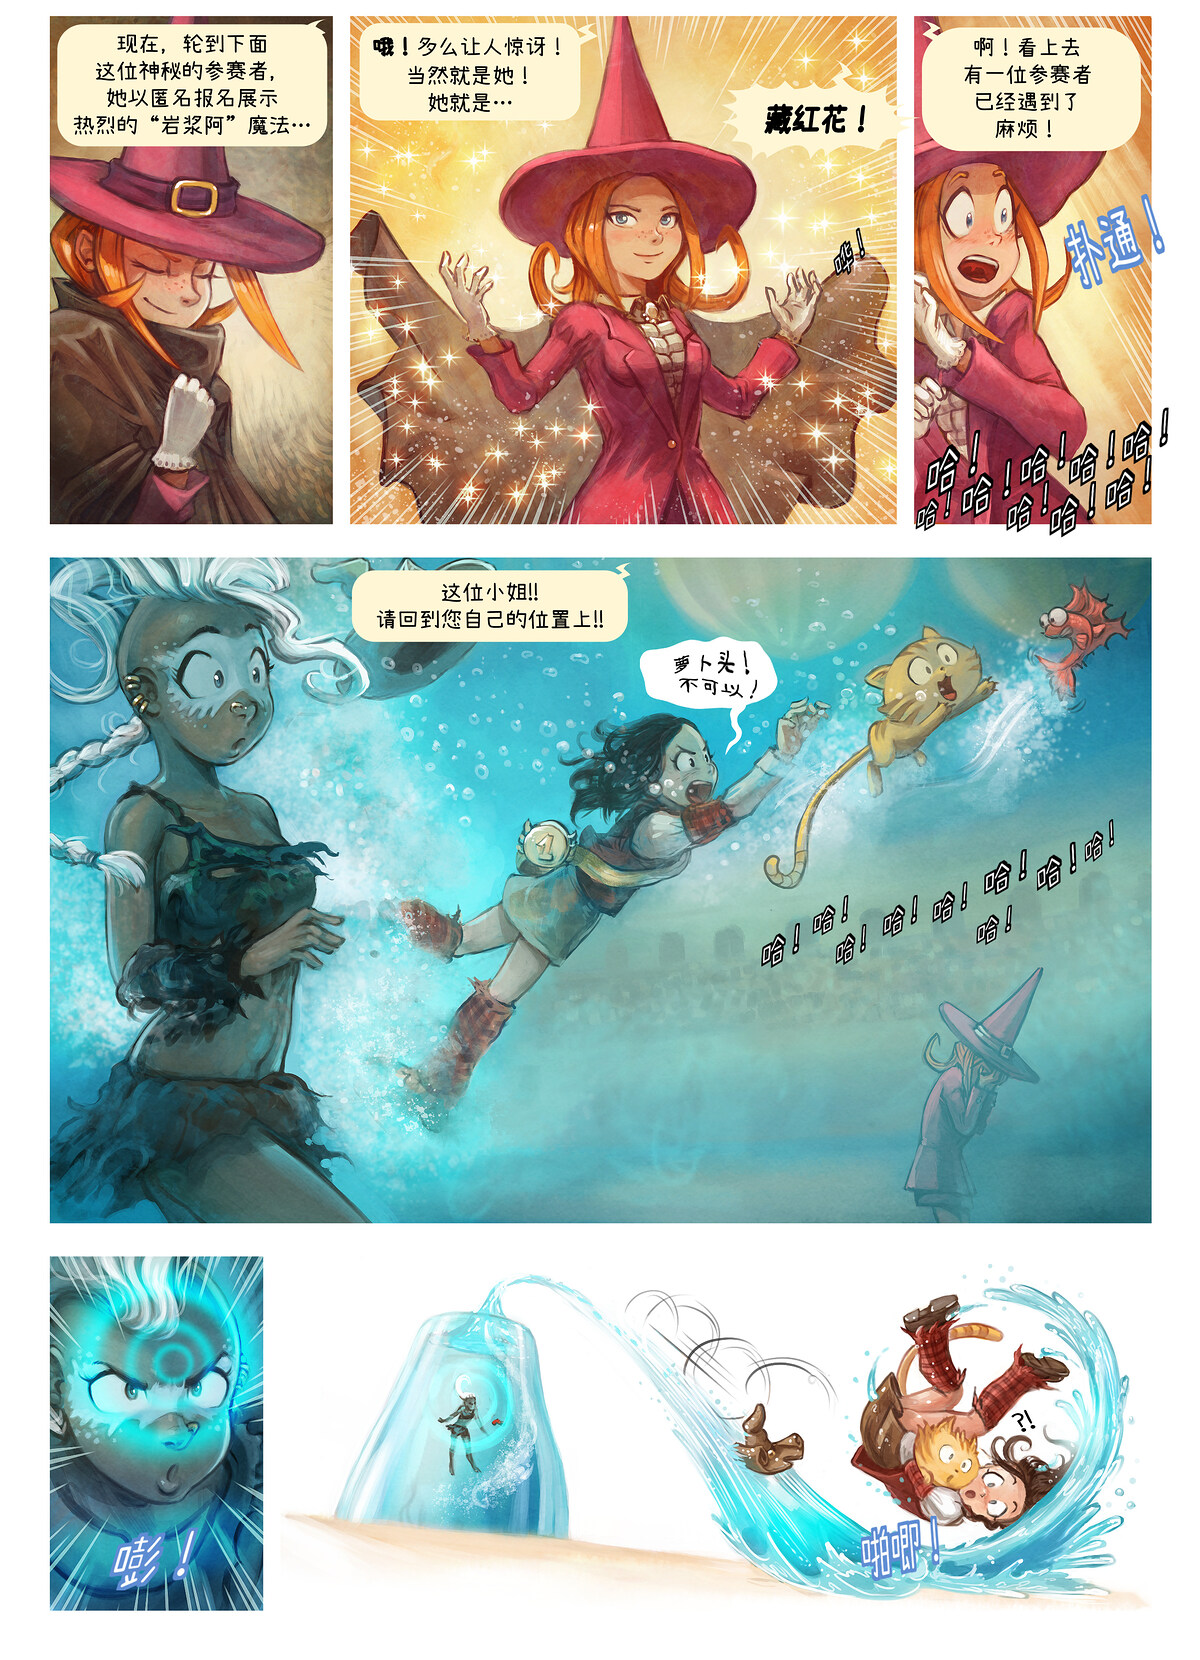 A webcomic page of Pepper&Carrot, 漫画全集 21 [cn], 页面 6